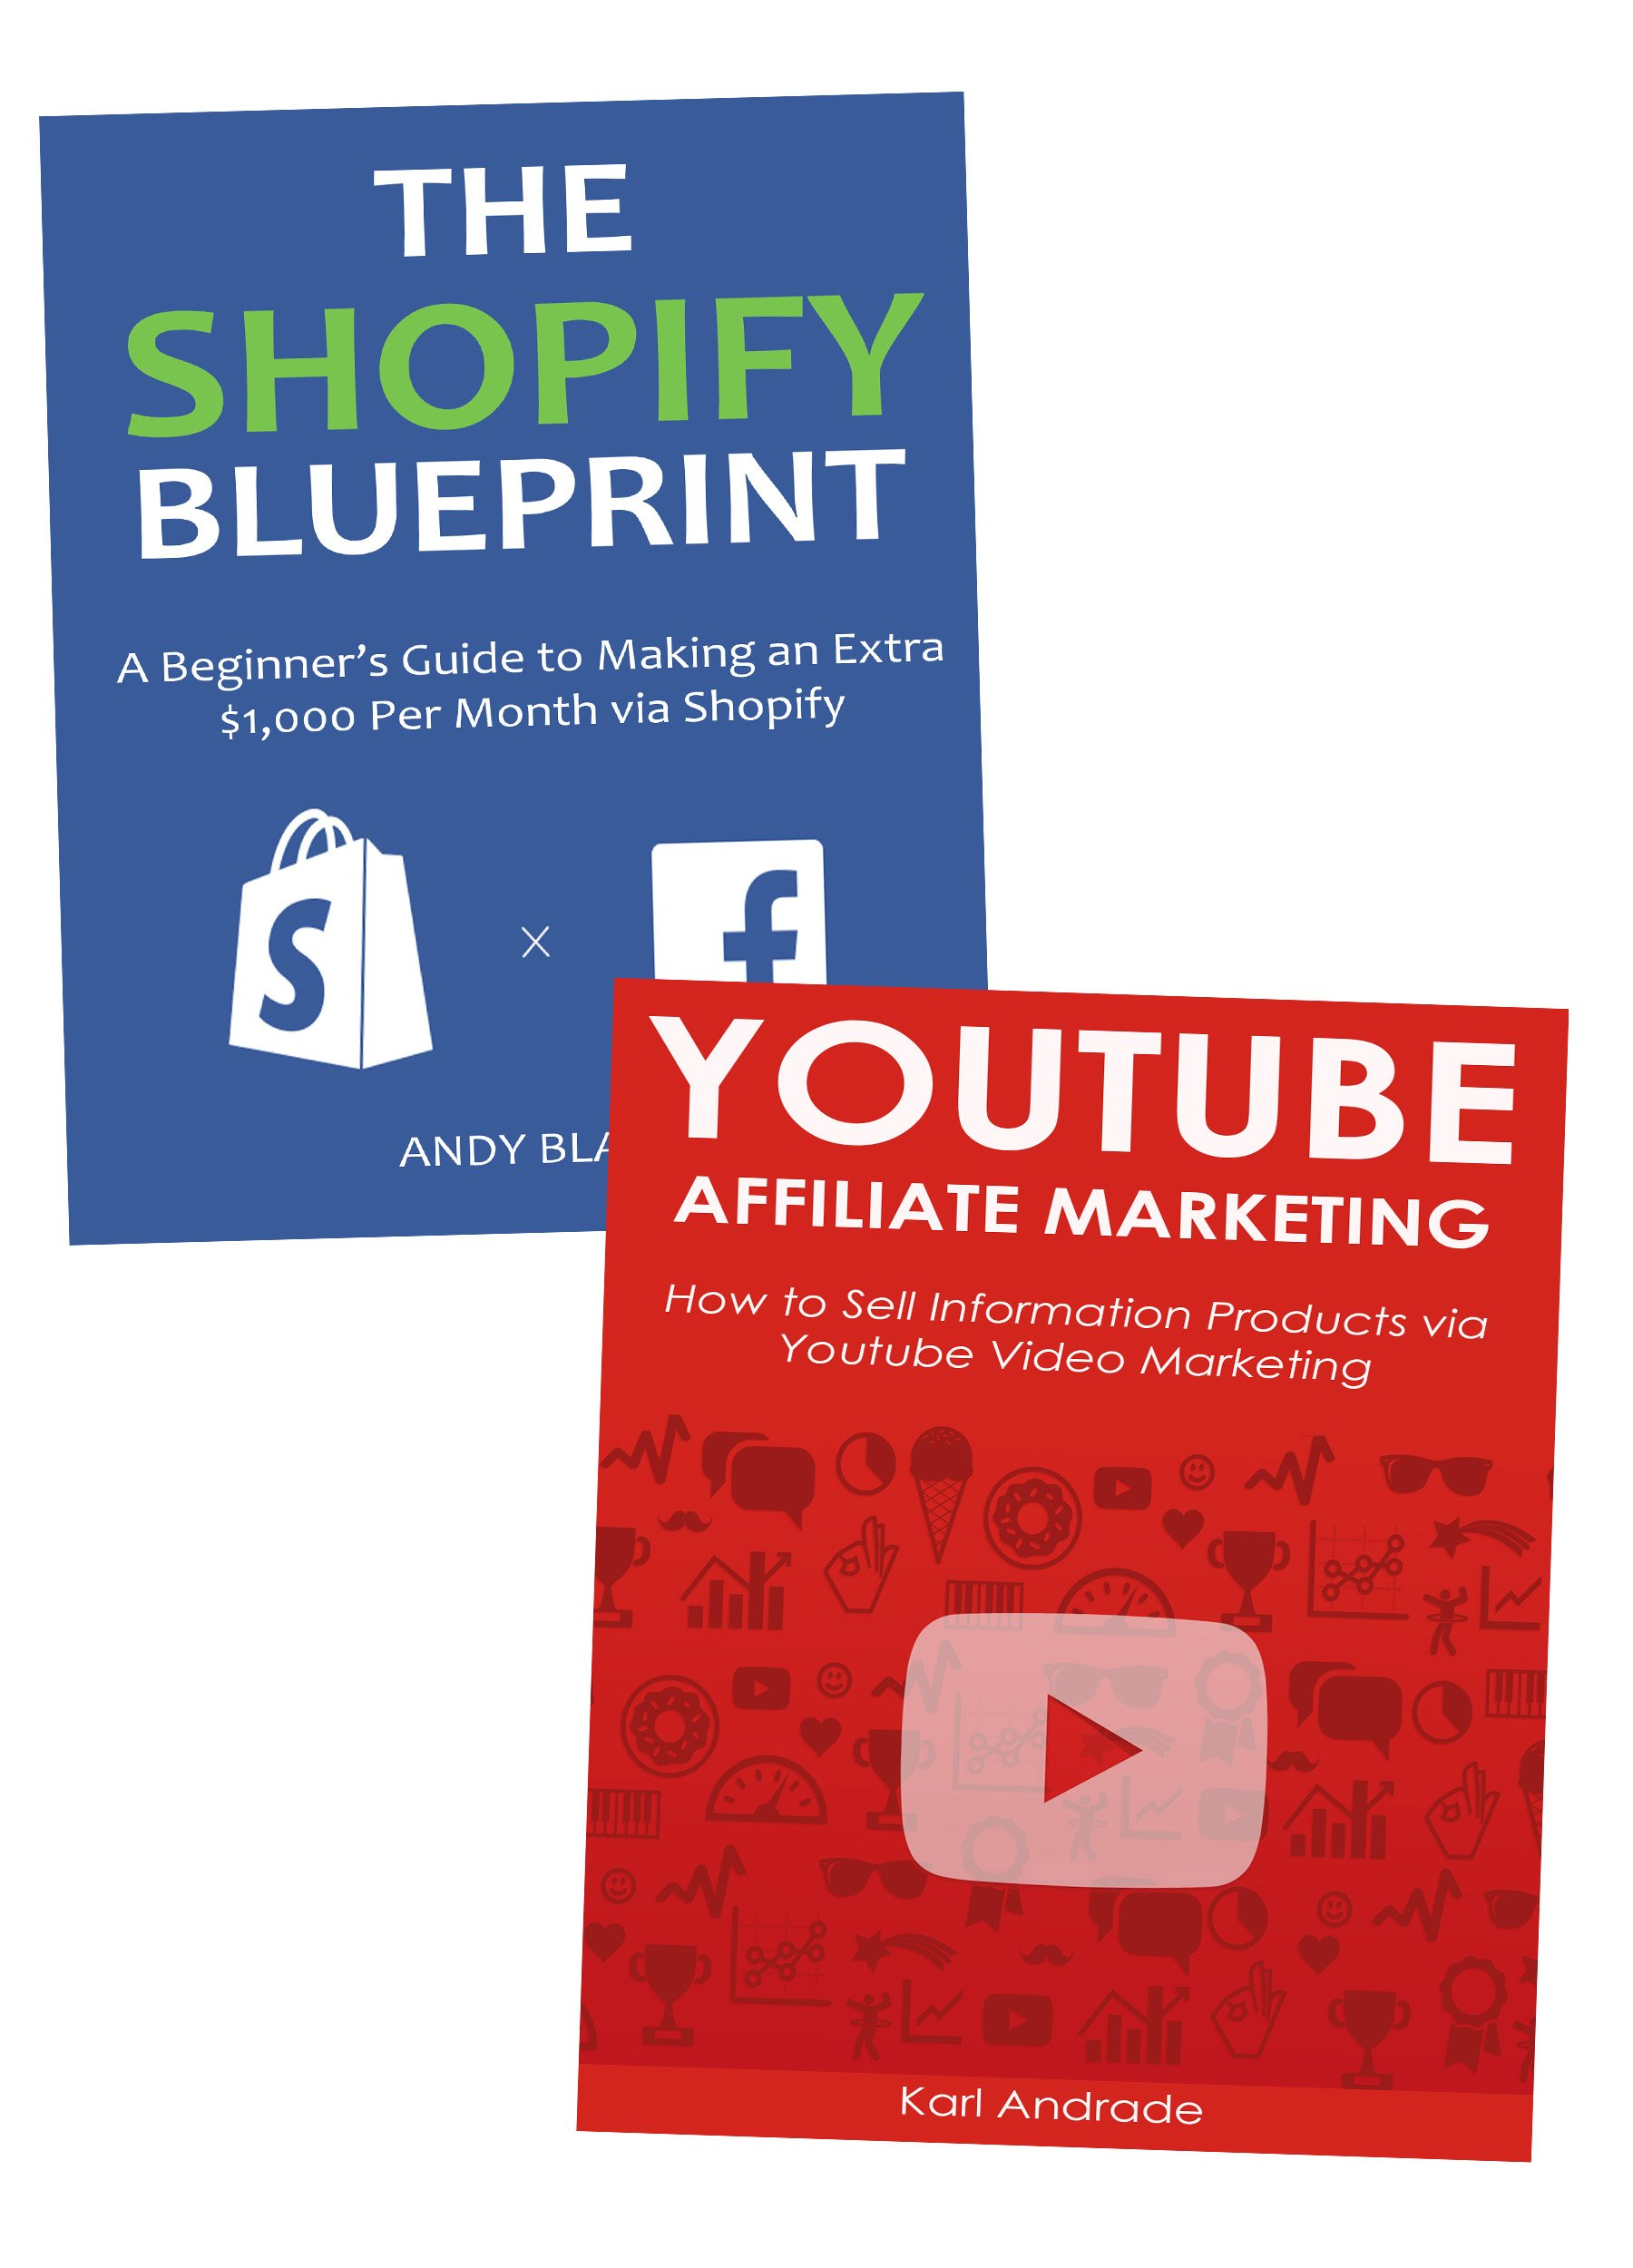 Semi-Passive Income Blueprints: Create a New Source of Income Outside Your Day Job. Shopify Ecommerce & YouTube Affiliate Marketing.